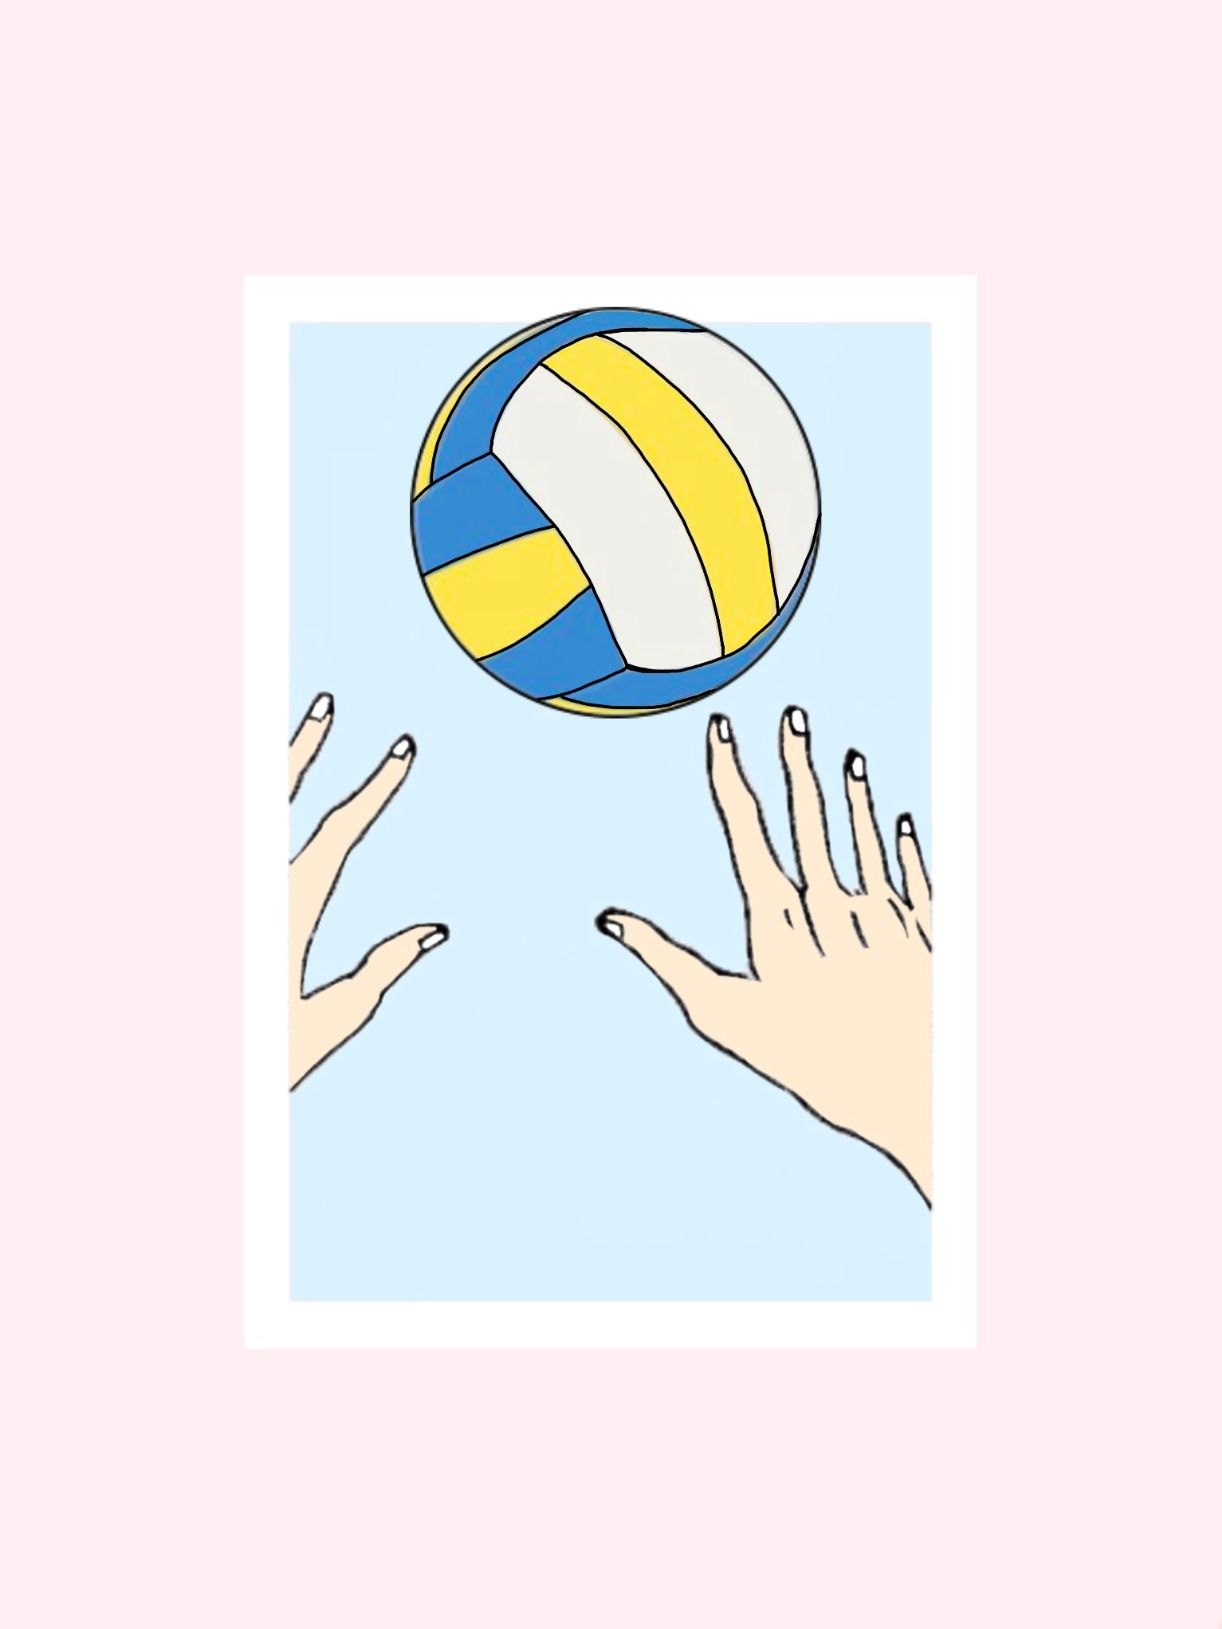 Volleyball Pastel Wallpaper Aesthetic Pastel Pink Haikyuu Pastel Blue Setter Volleyball Wallpaper Blue Wallpaper Iphone Cool Blue Wallpaper